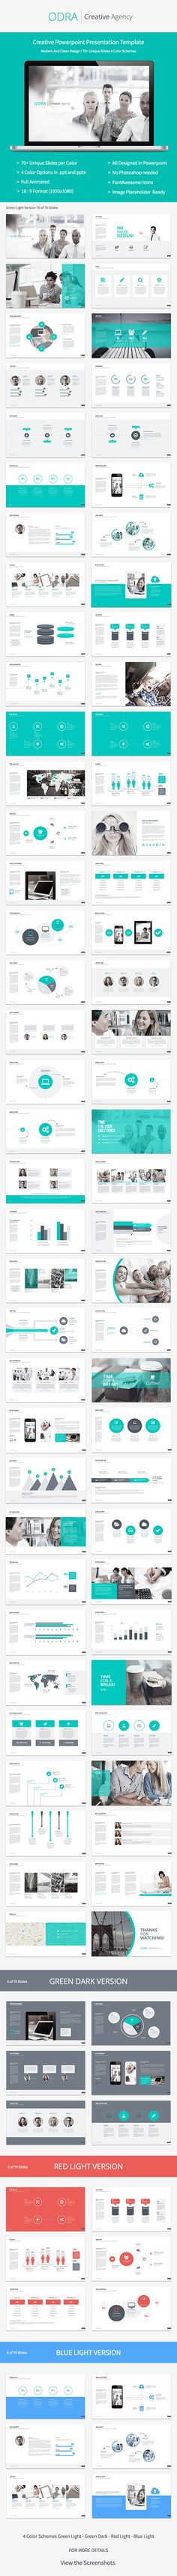 Odra Powerpoint Template — Powerpoint PPT #template #agency • Available here → https://graphicriver.net/item/odra-powerpoint-template/8336335?ref=pxcr